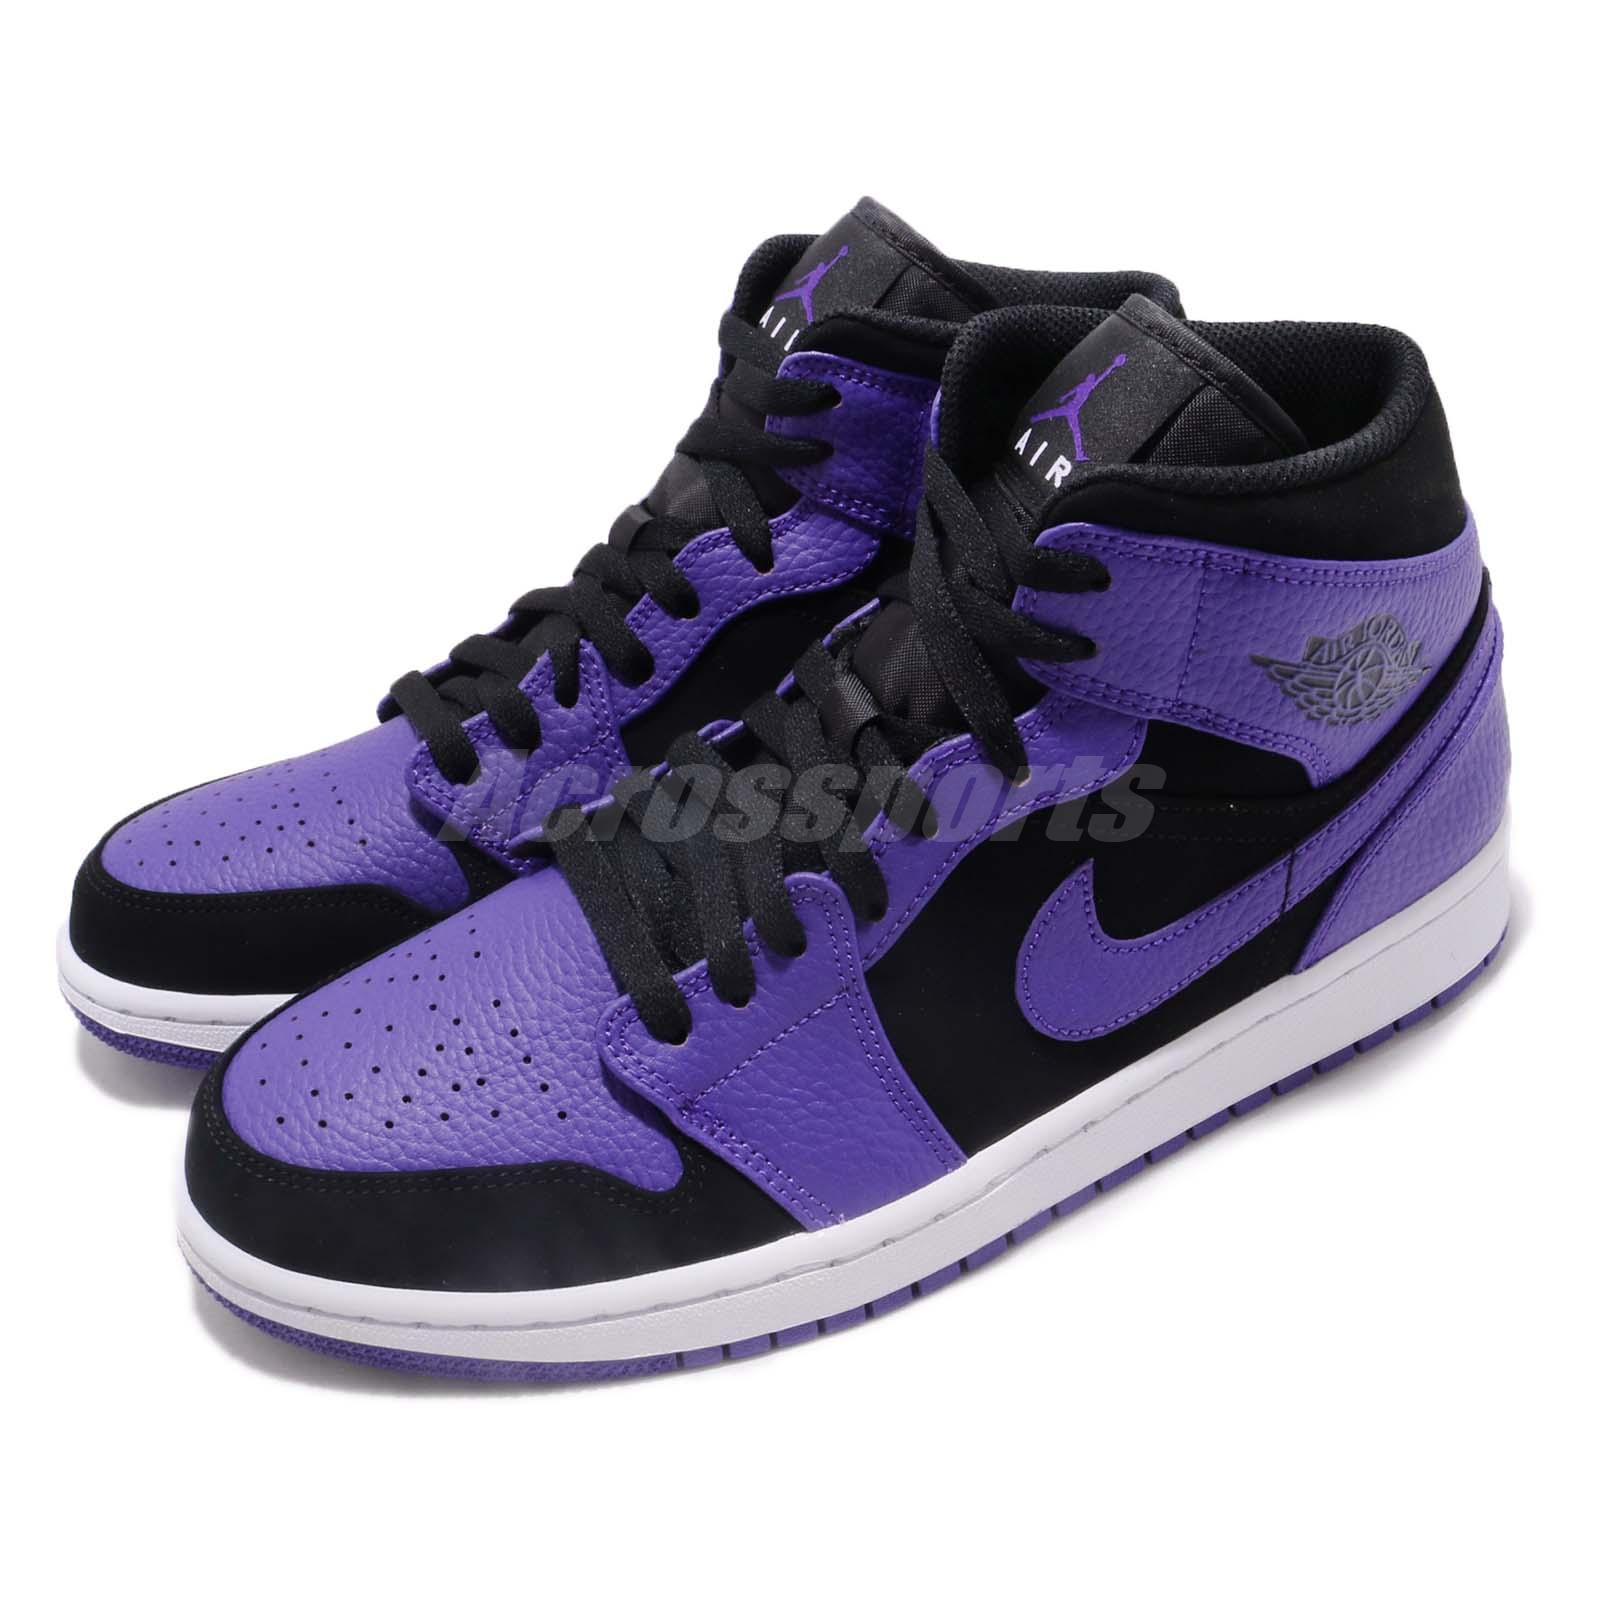 89295cb9871 Details about Nike Air Jordan 1 Mid Black Concord Purple Mens Shoes  Sneakers AJ1 554724-051